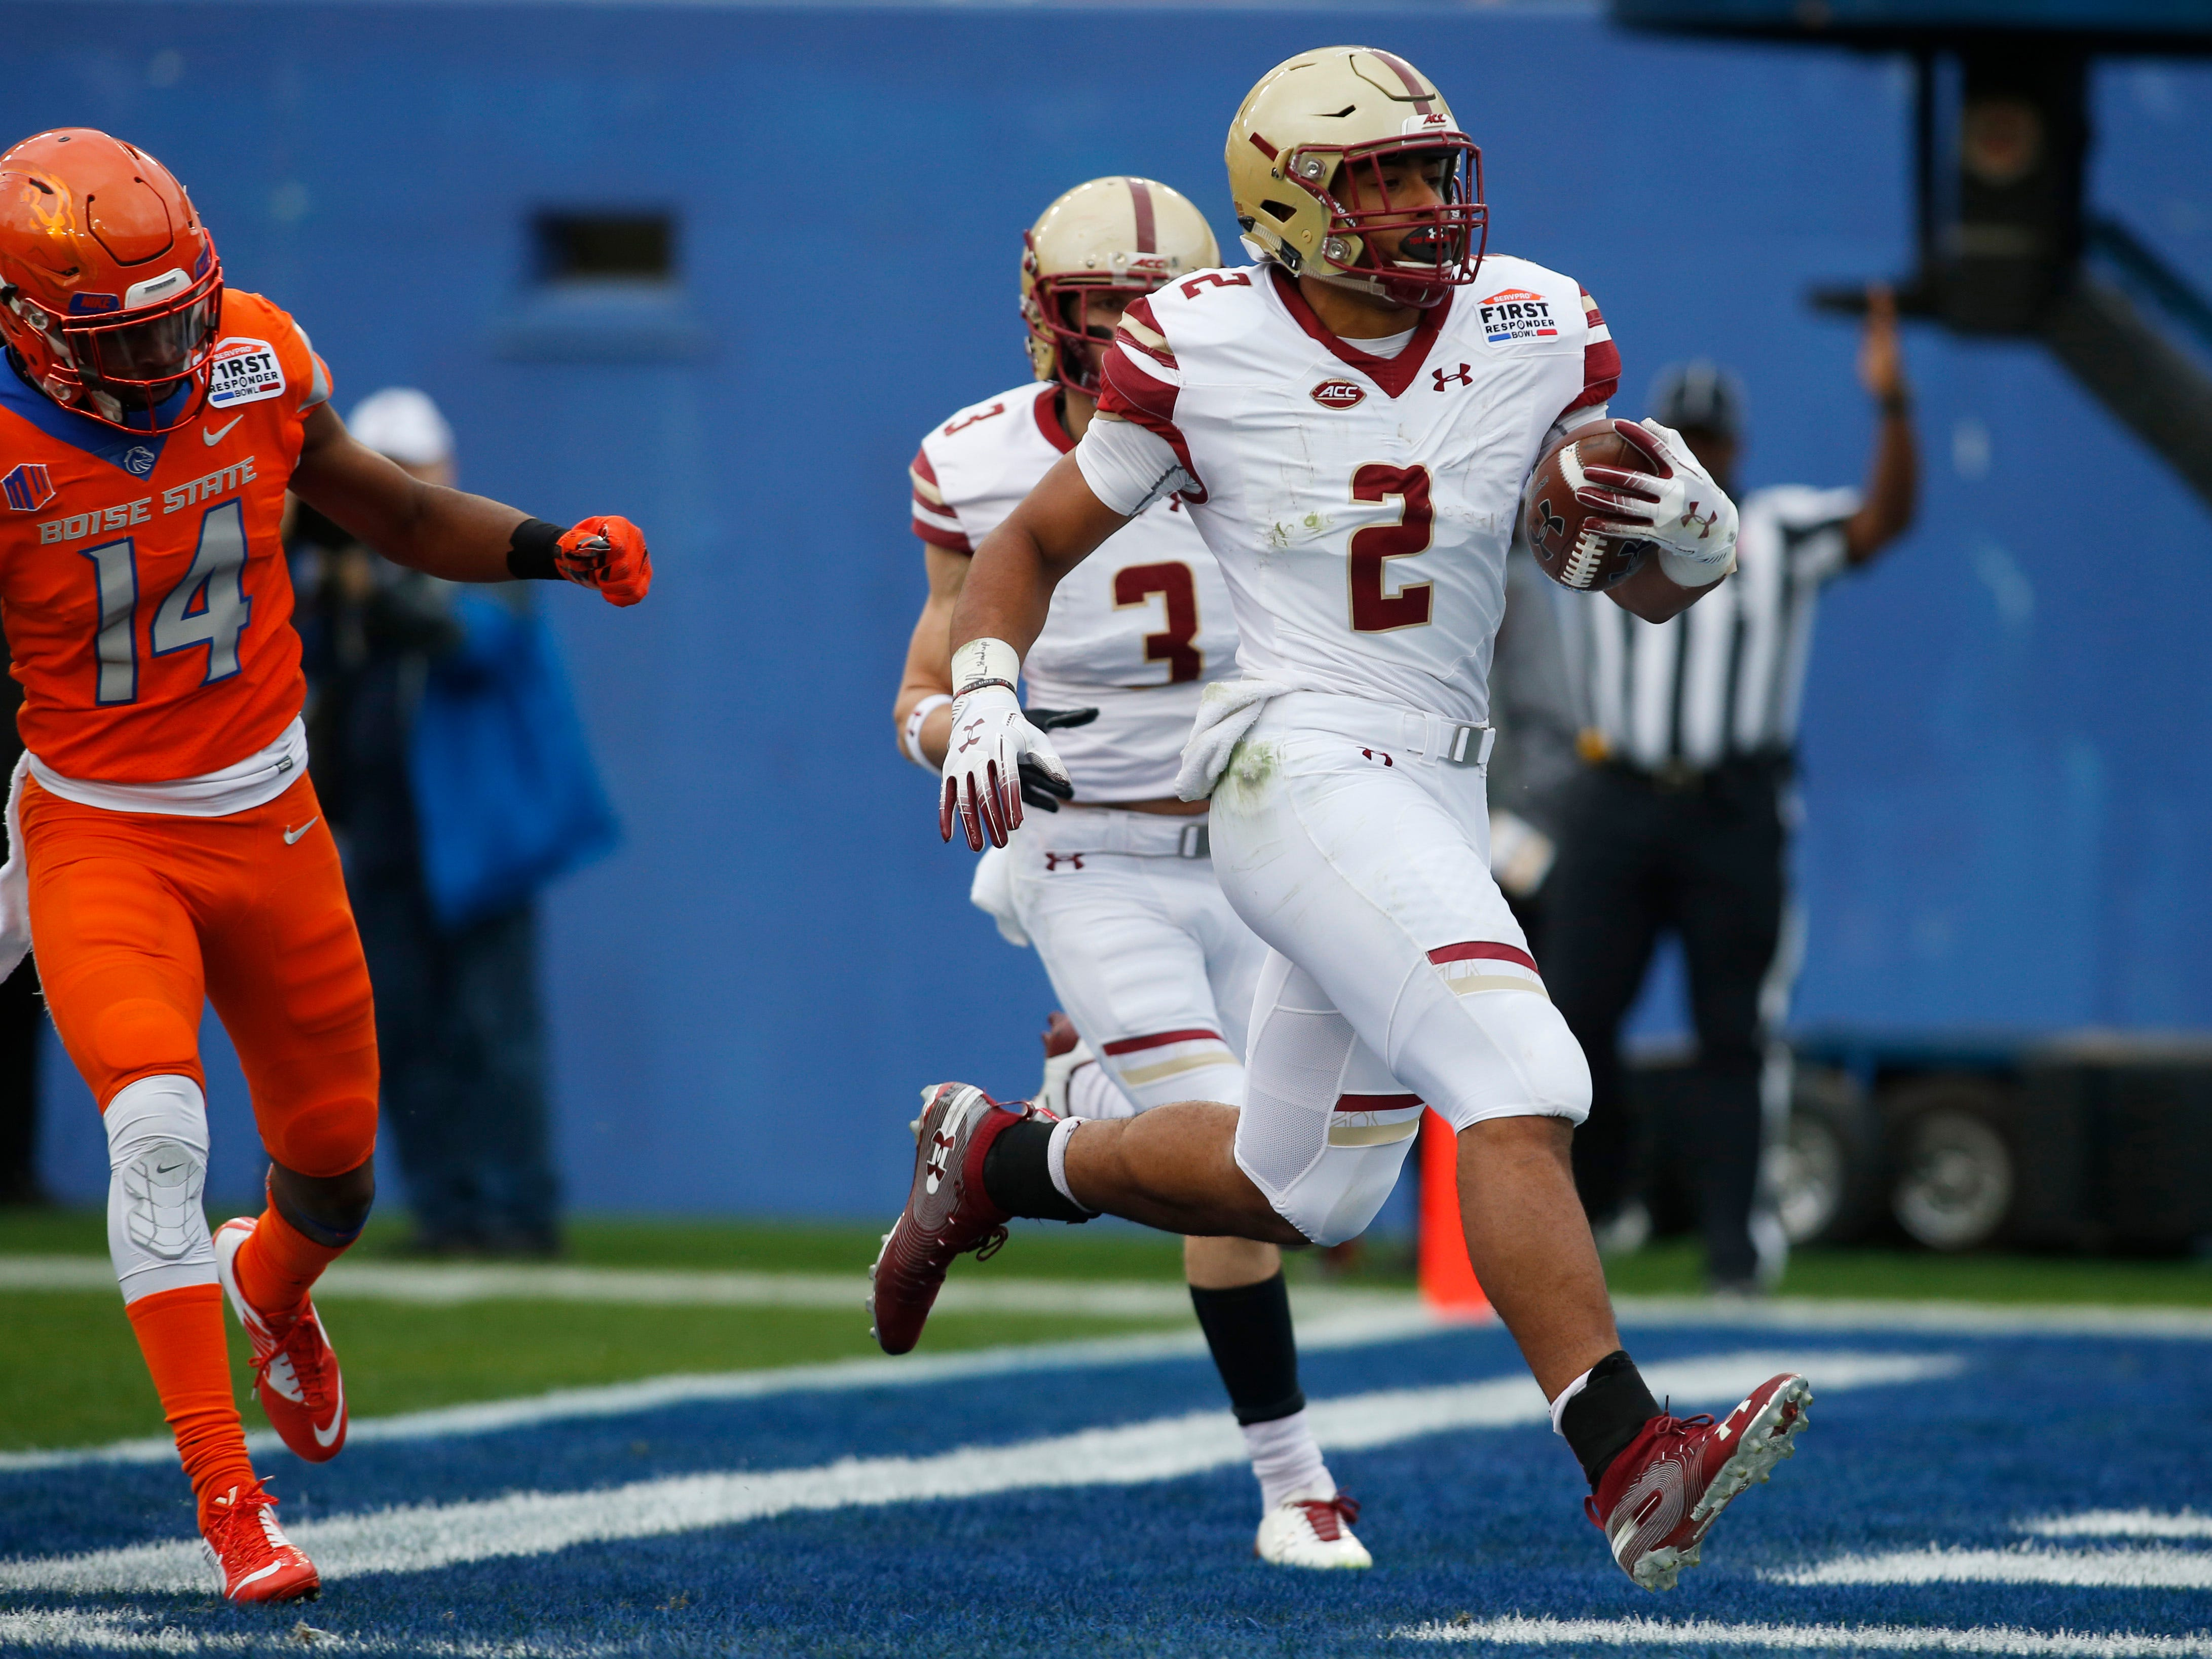 Boston College running back AJ Dillon scores a touchdown in the first quarter against Boise State  in the First Responder Bowl in Dallas. The play, however, didn't count because the game was  canceled.